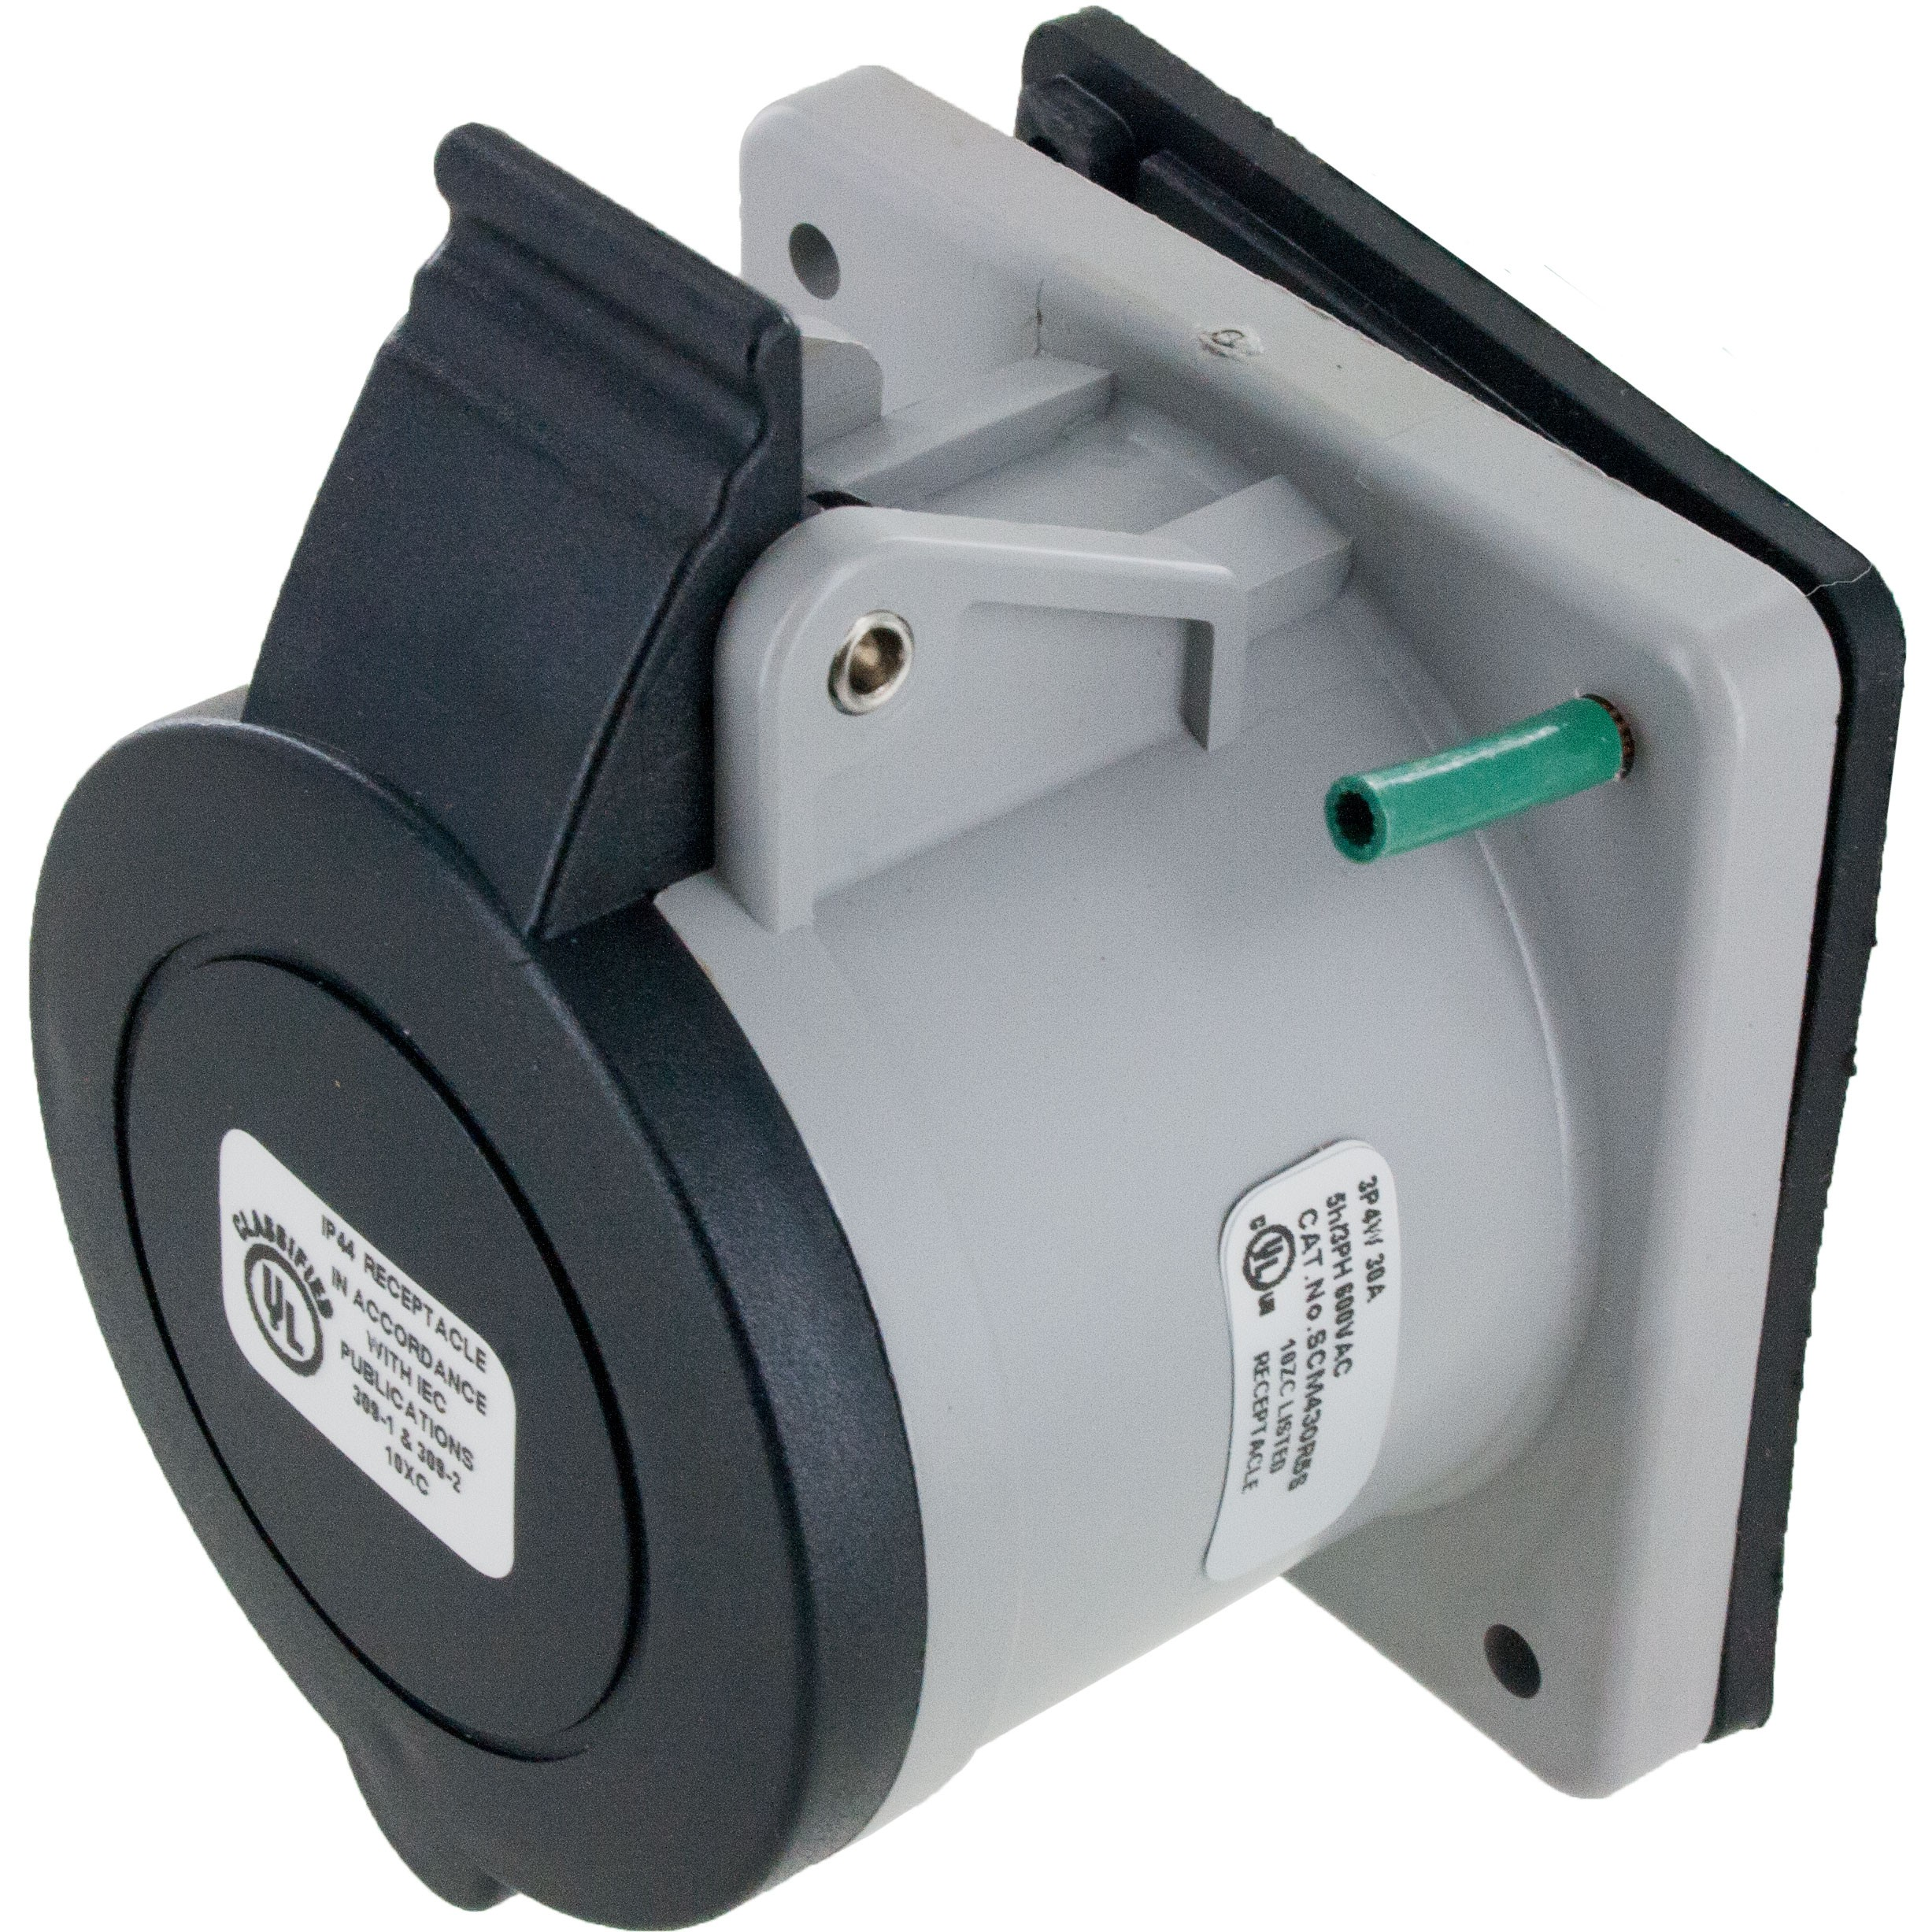 430R5S Pin And Sleeve Receptacle 30 Amp 3 Pole 4 Wire